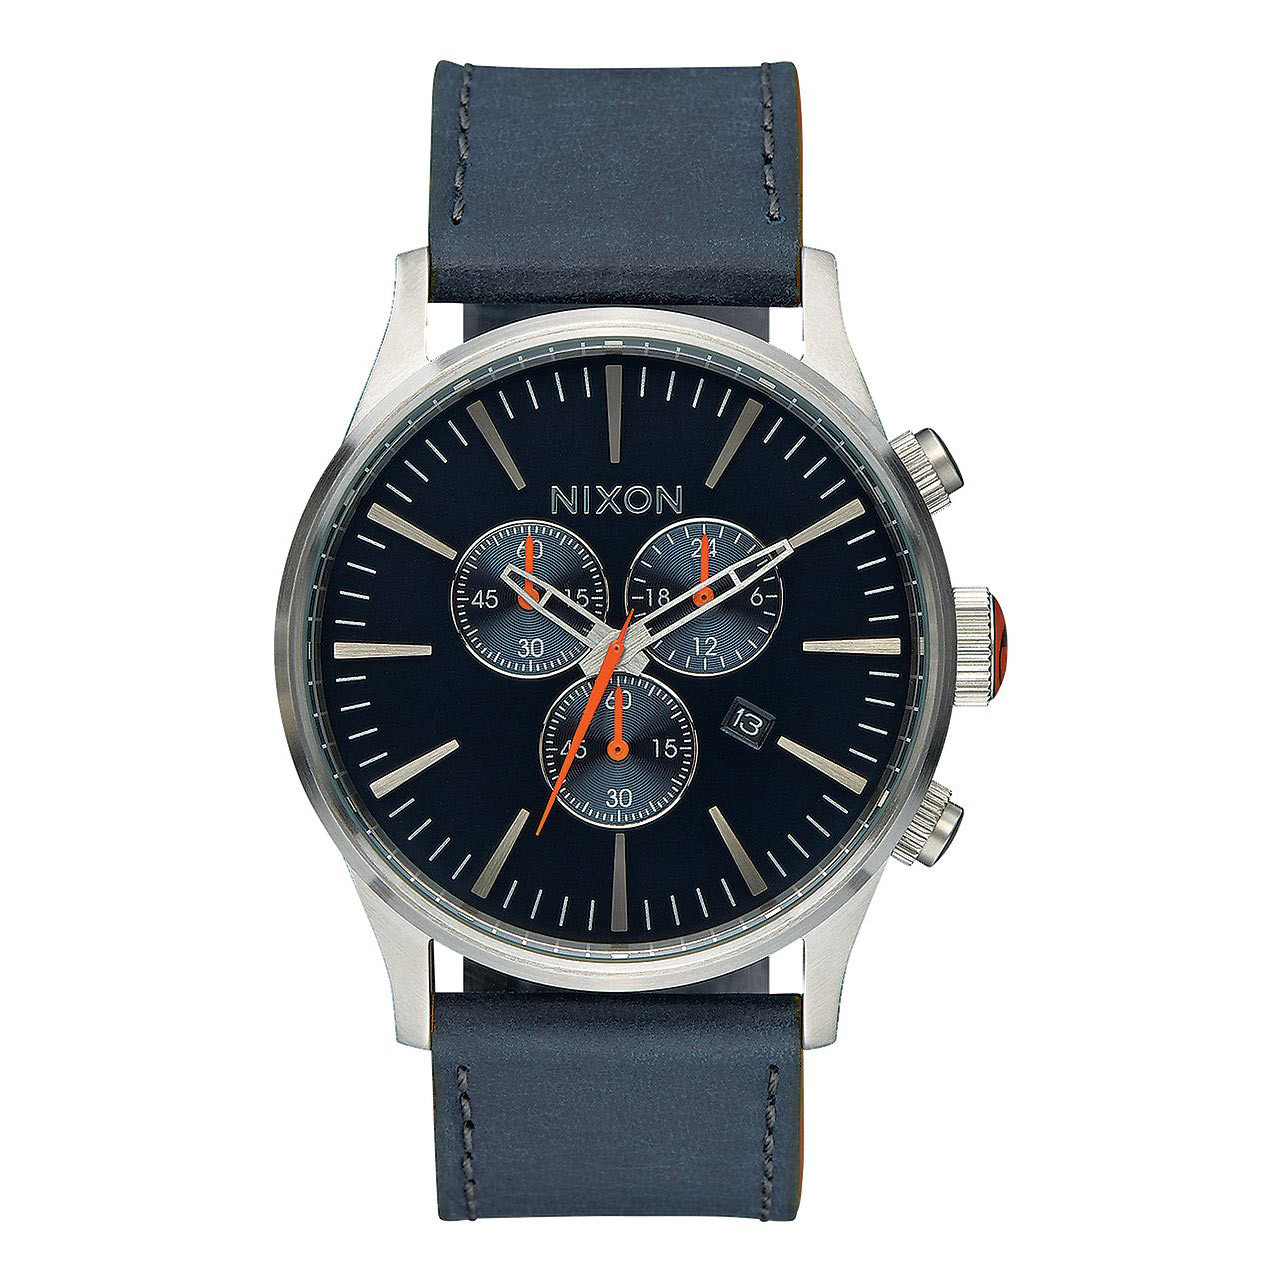 Hodinky Nixon Sentry Chrono Leather blue/orange